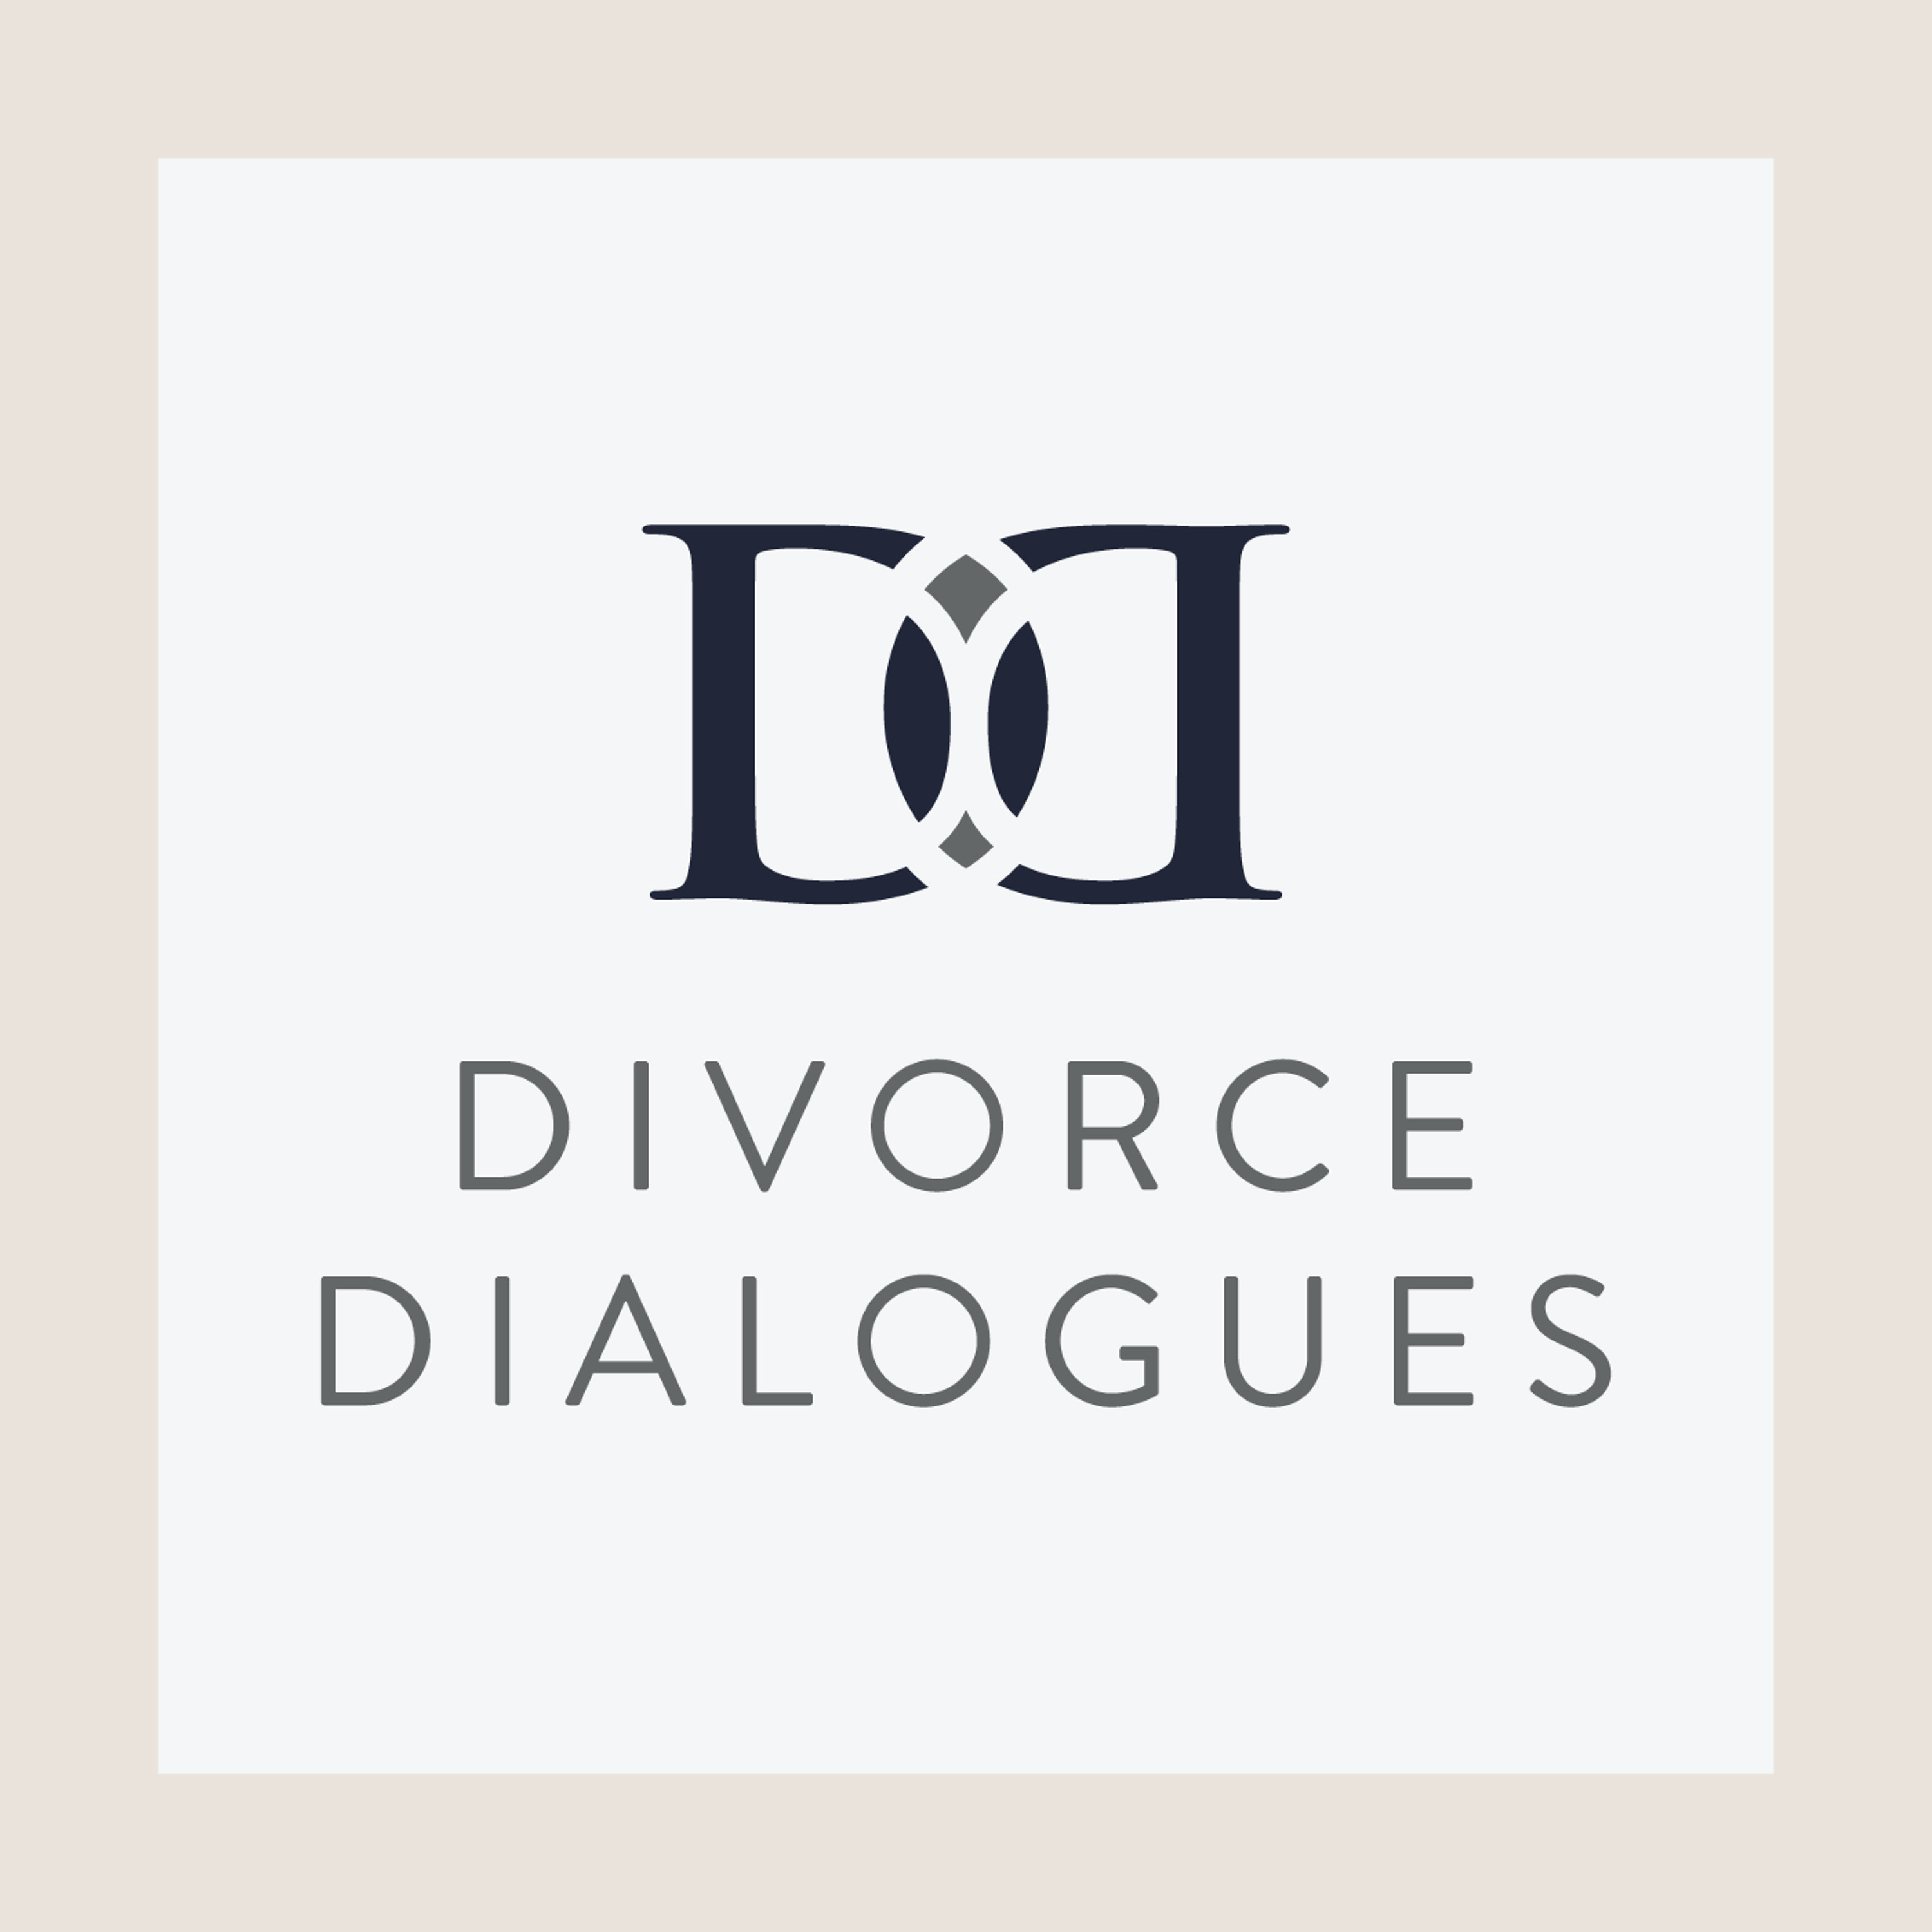 Divorce Dialogues - The Realities of Divorce Law with Jacqueline Newman